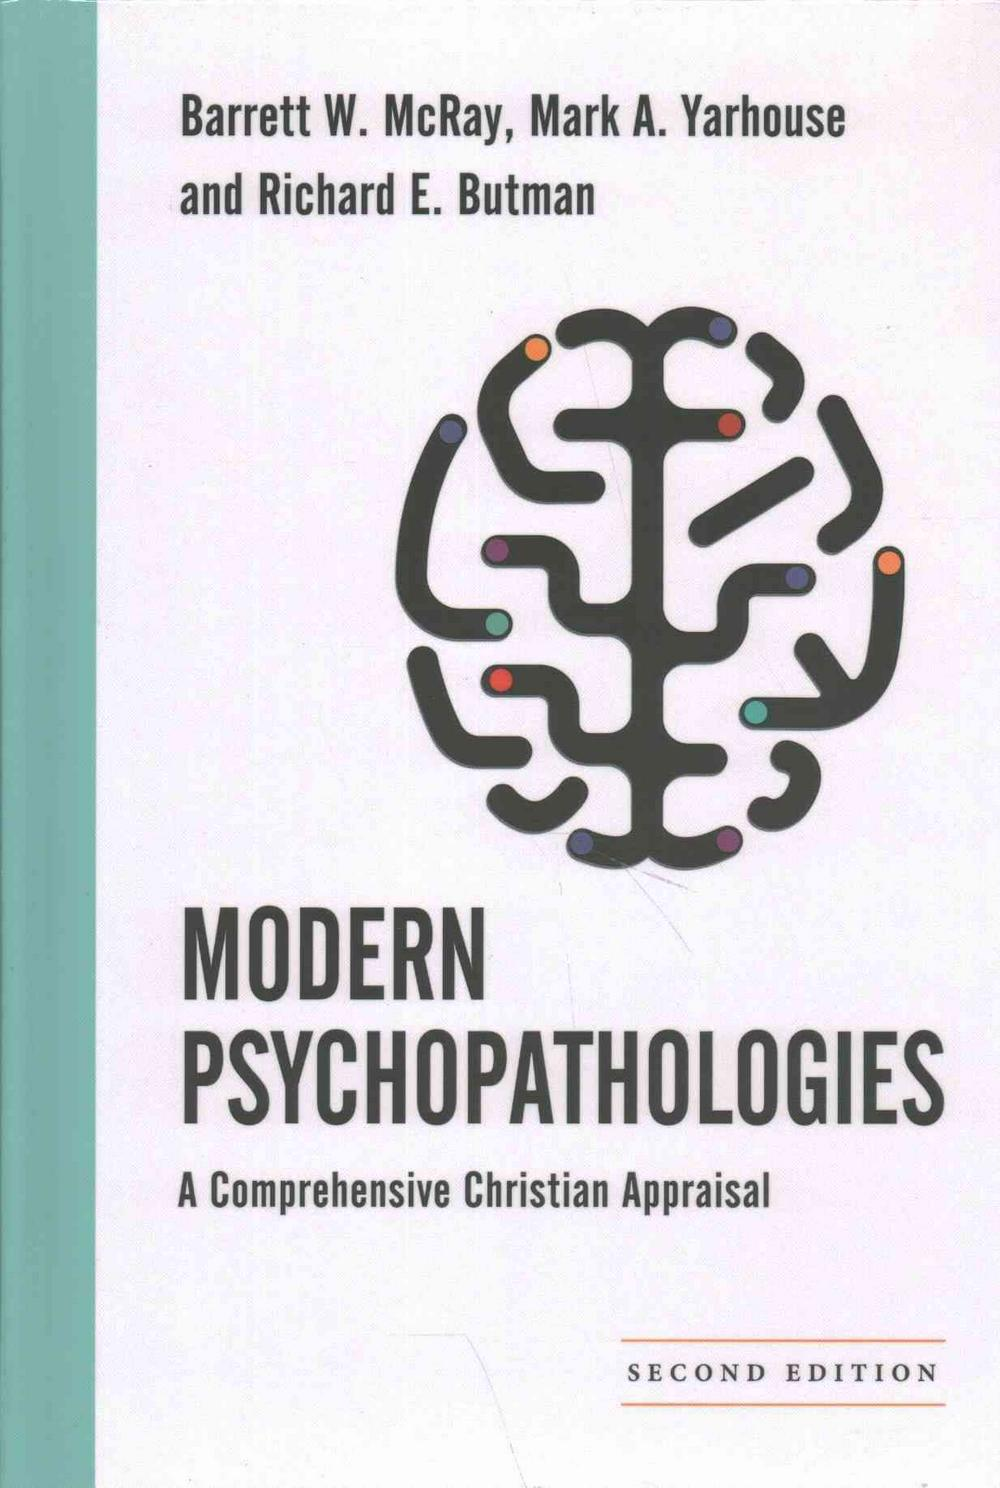 Modern PsychopathologiesA Comprehensive Christian Appraisal